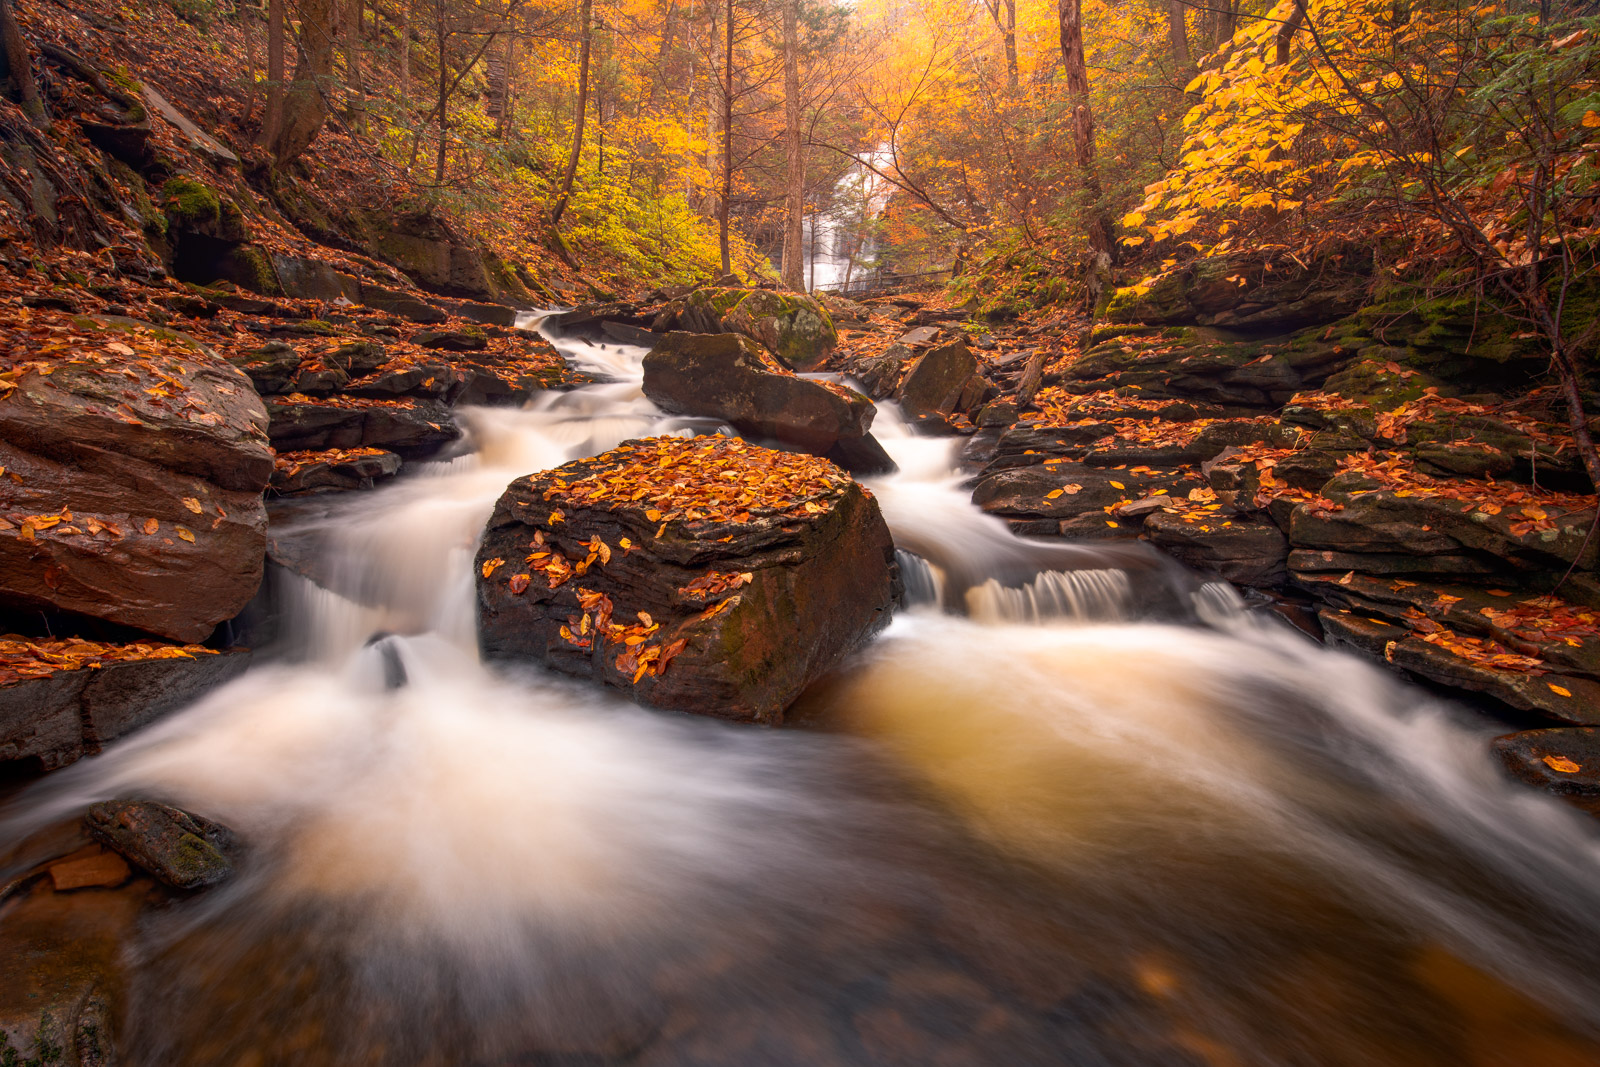 Autumn color below Ganoga Falls, the tallest waterfall at 94 feet, in Ricketts Glen State Park.